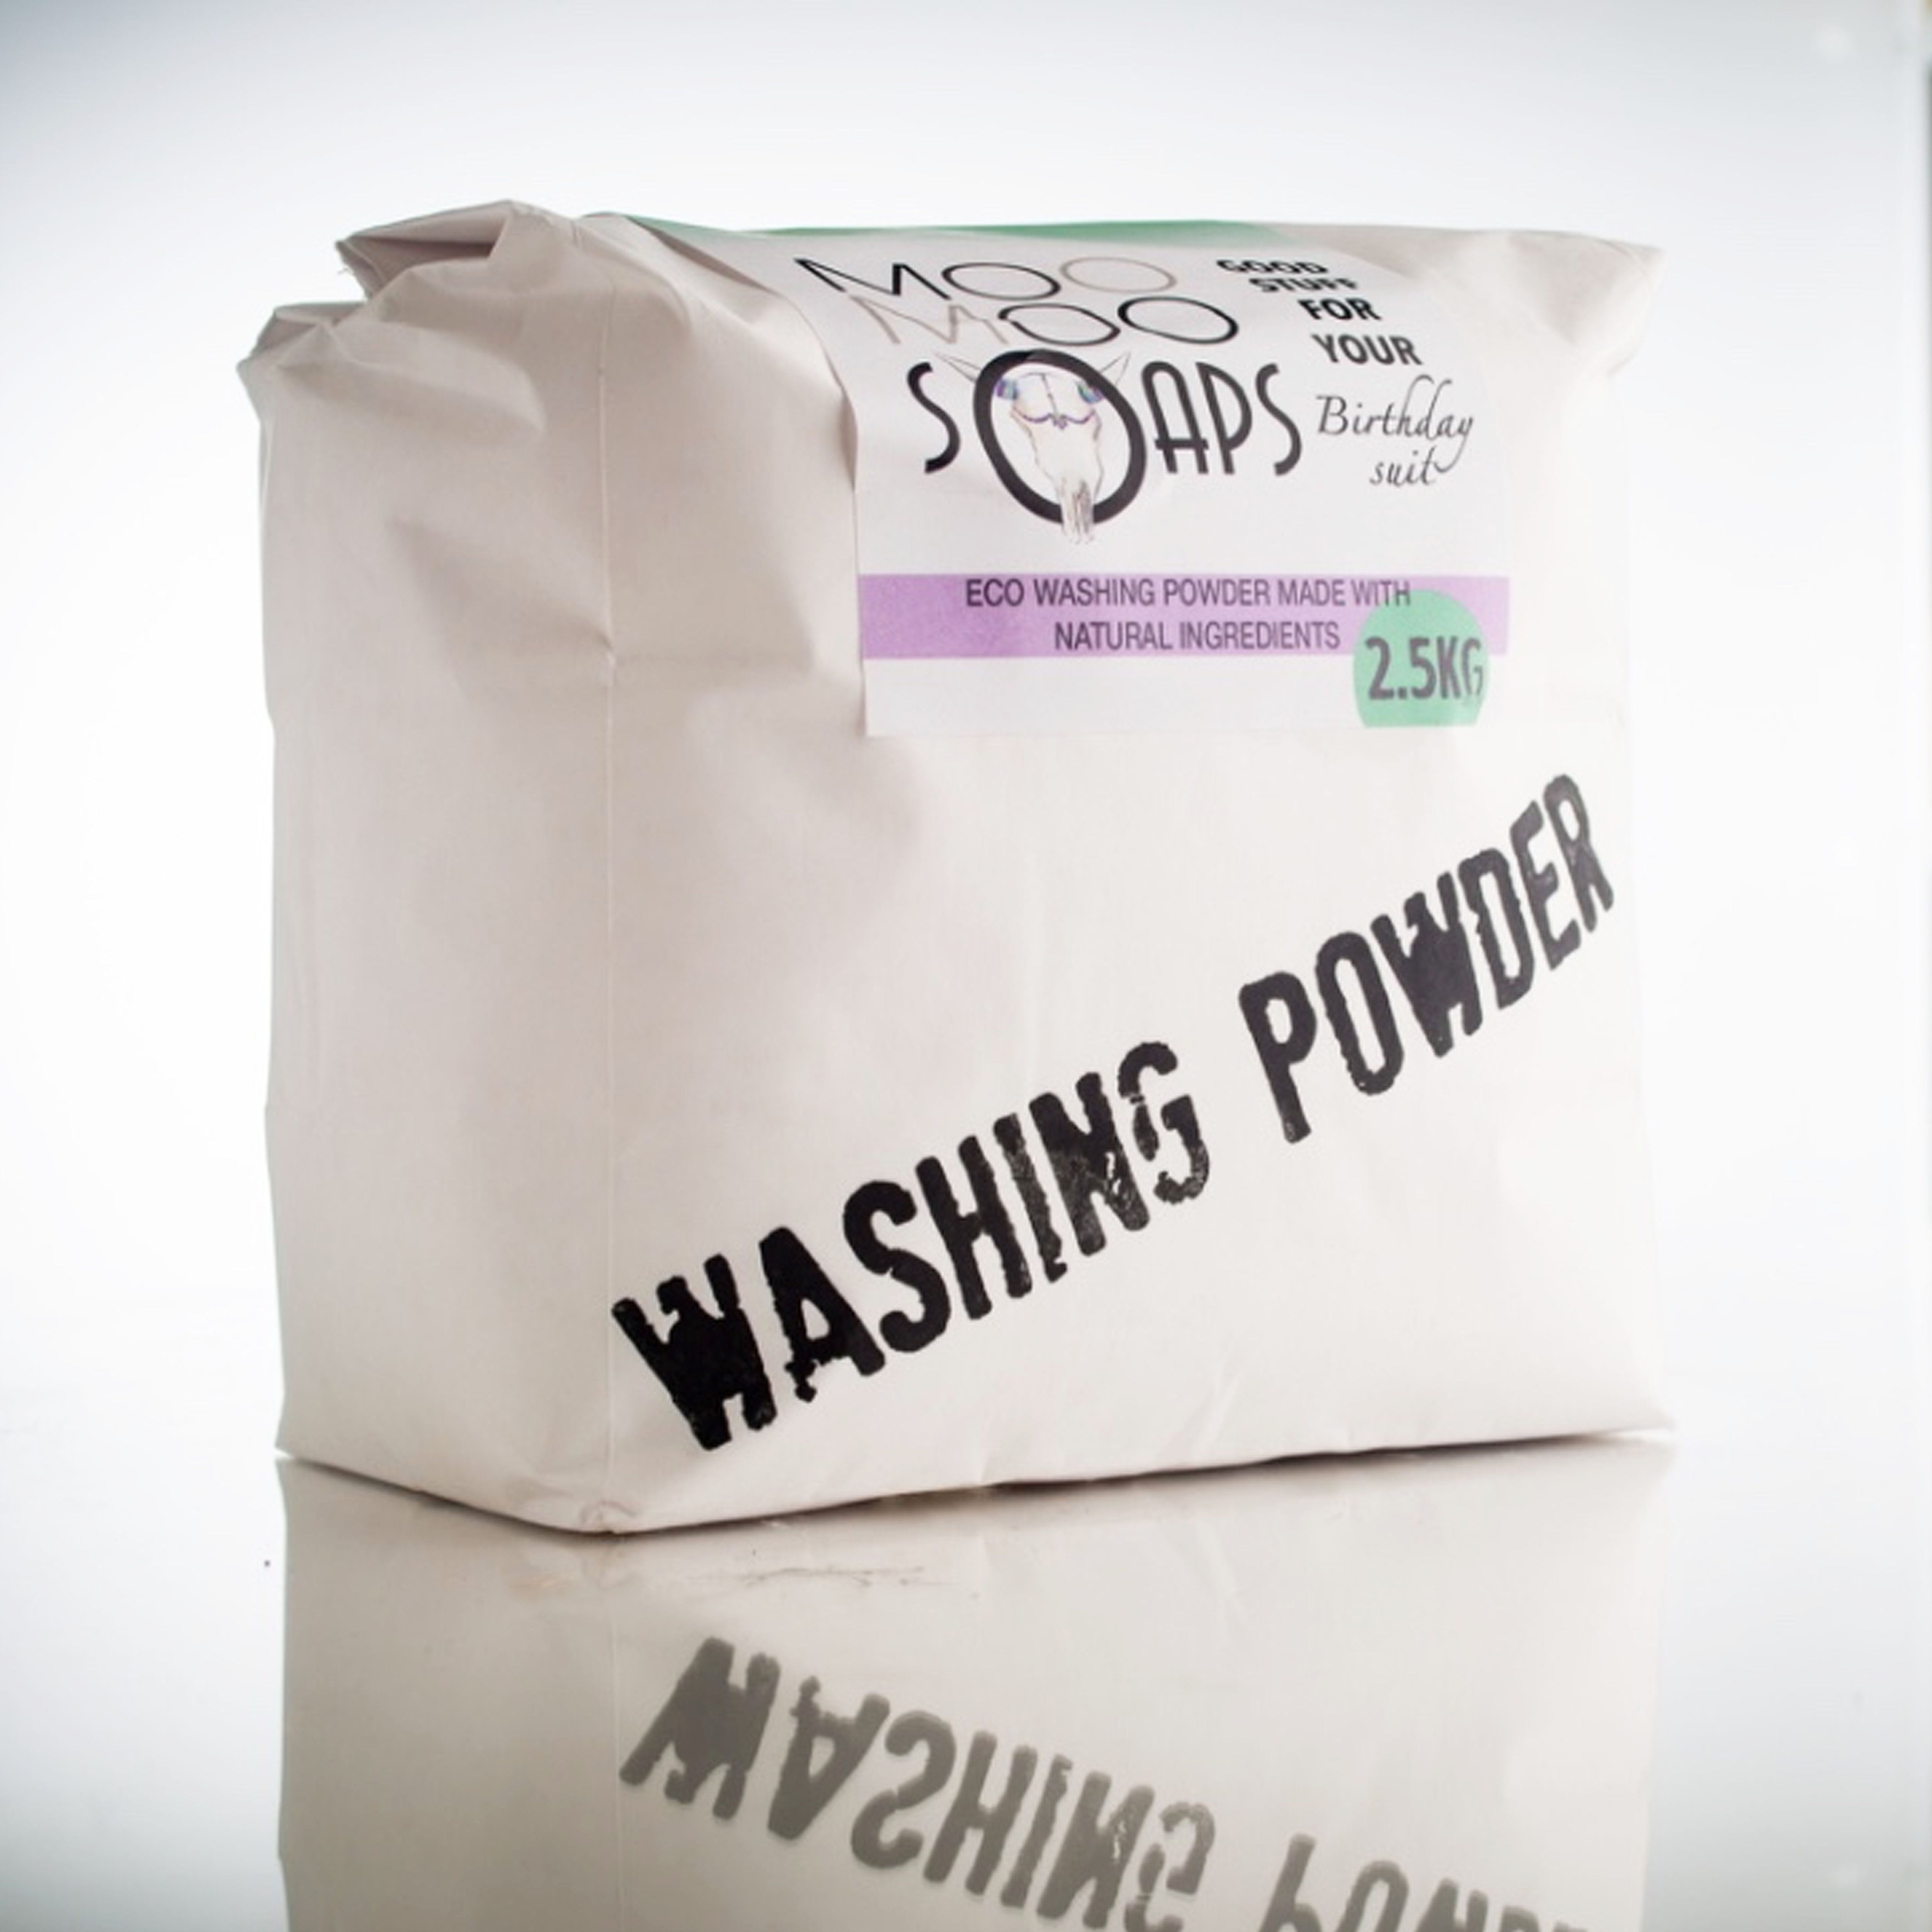 2.5kg WASHING POWDER Best face products, Best face wash